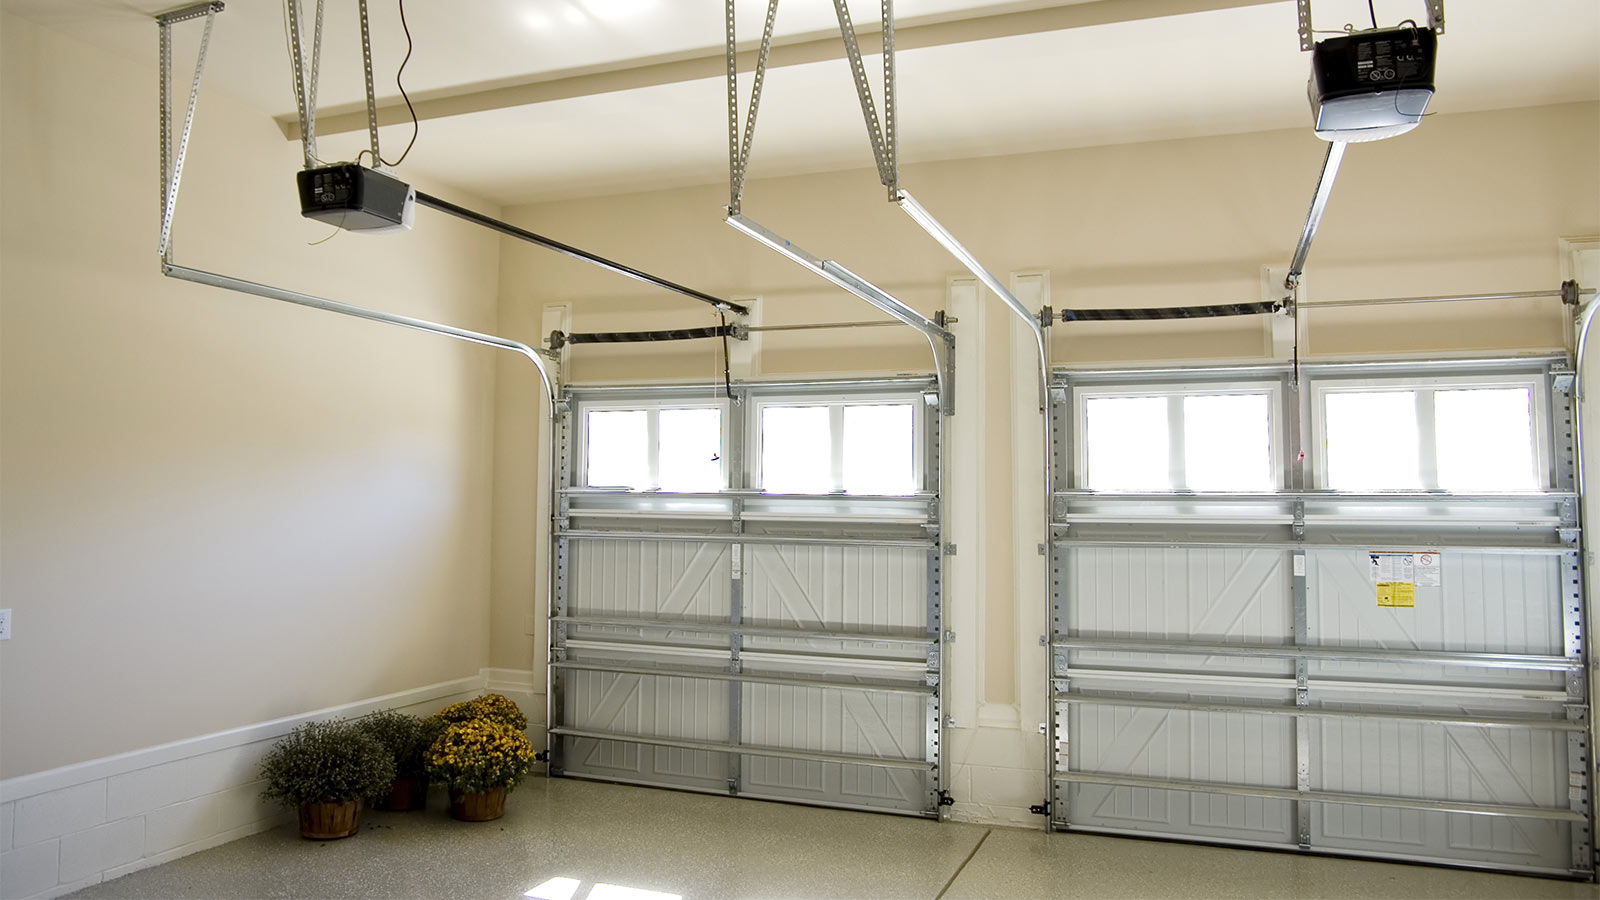 Sectional Garage Doors from Up and Over Doors Braintree suppliers.